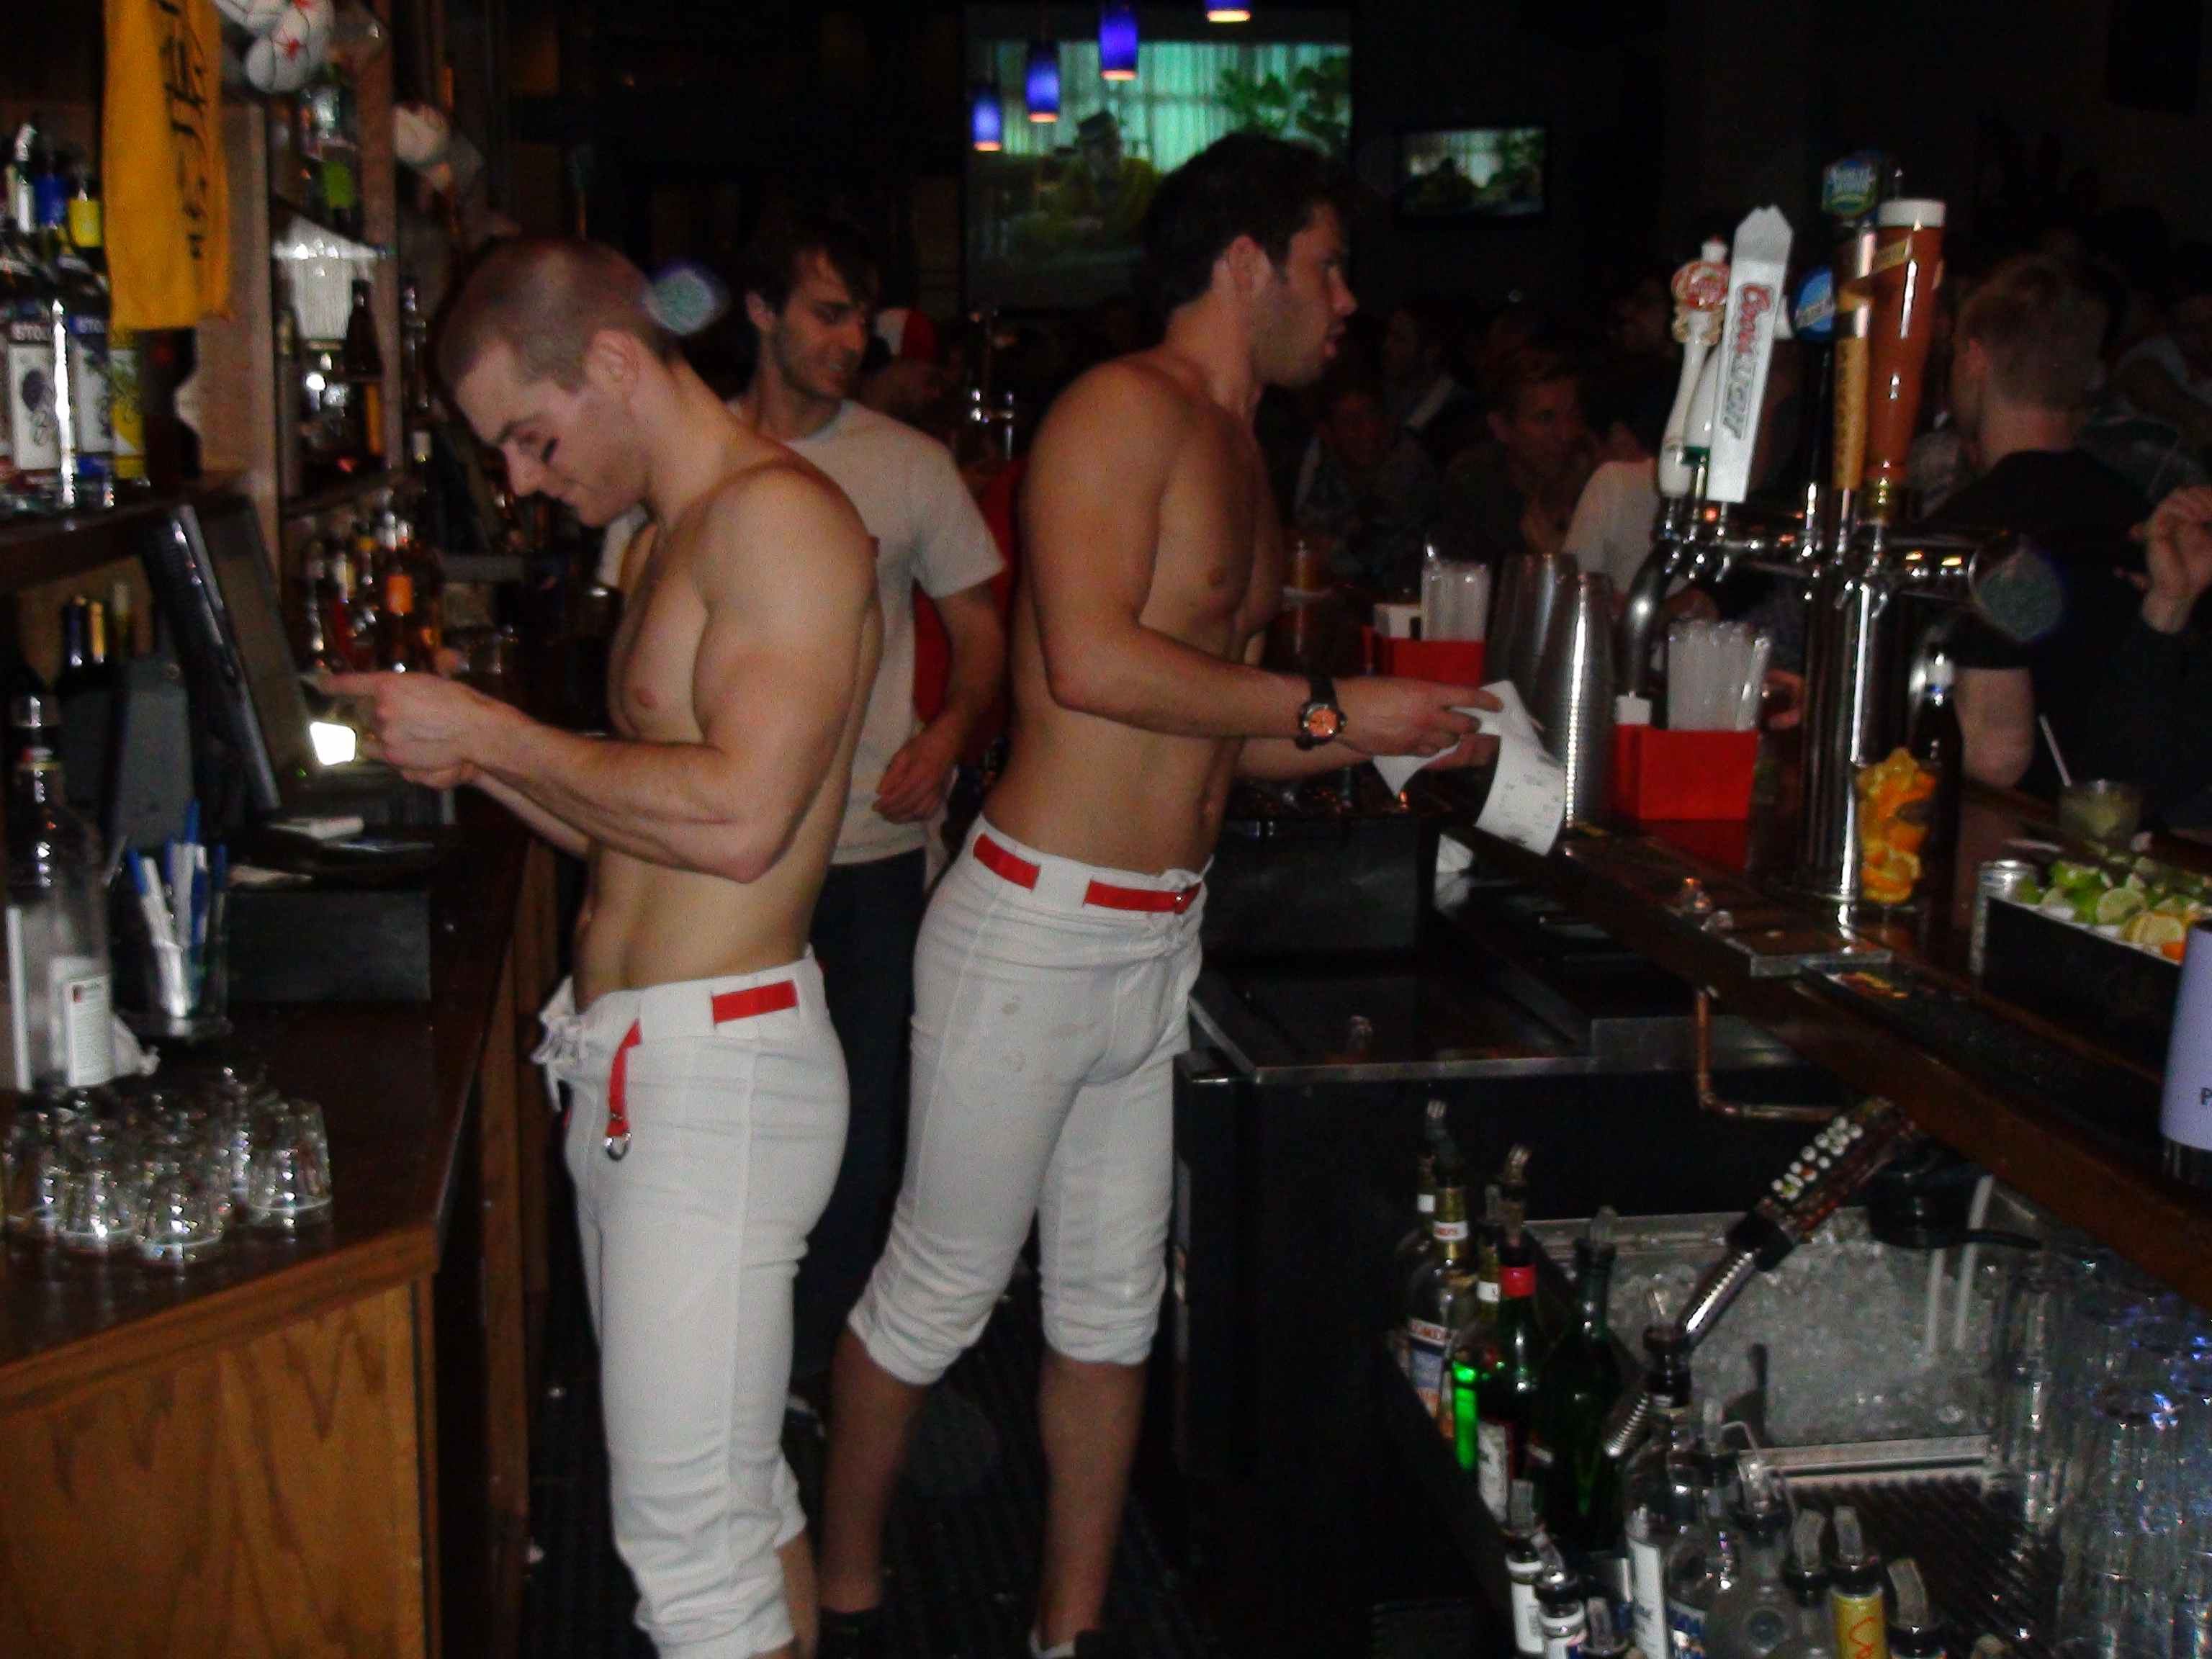 Gay Austin Guide - Gay Bars & Clubs, Hotels, Beaches